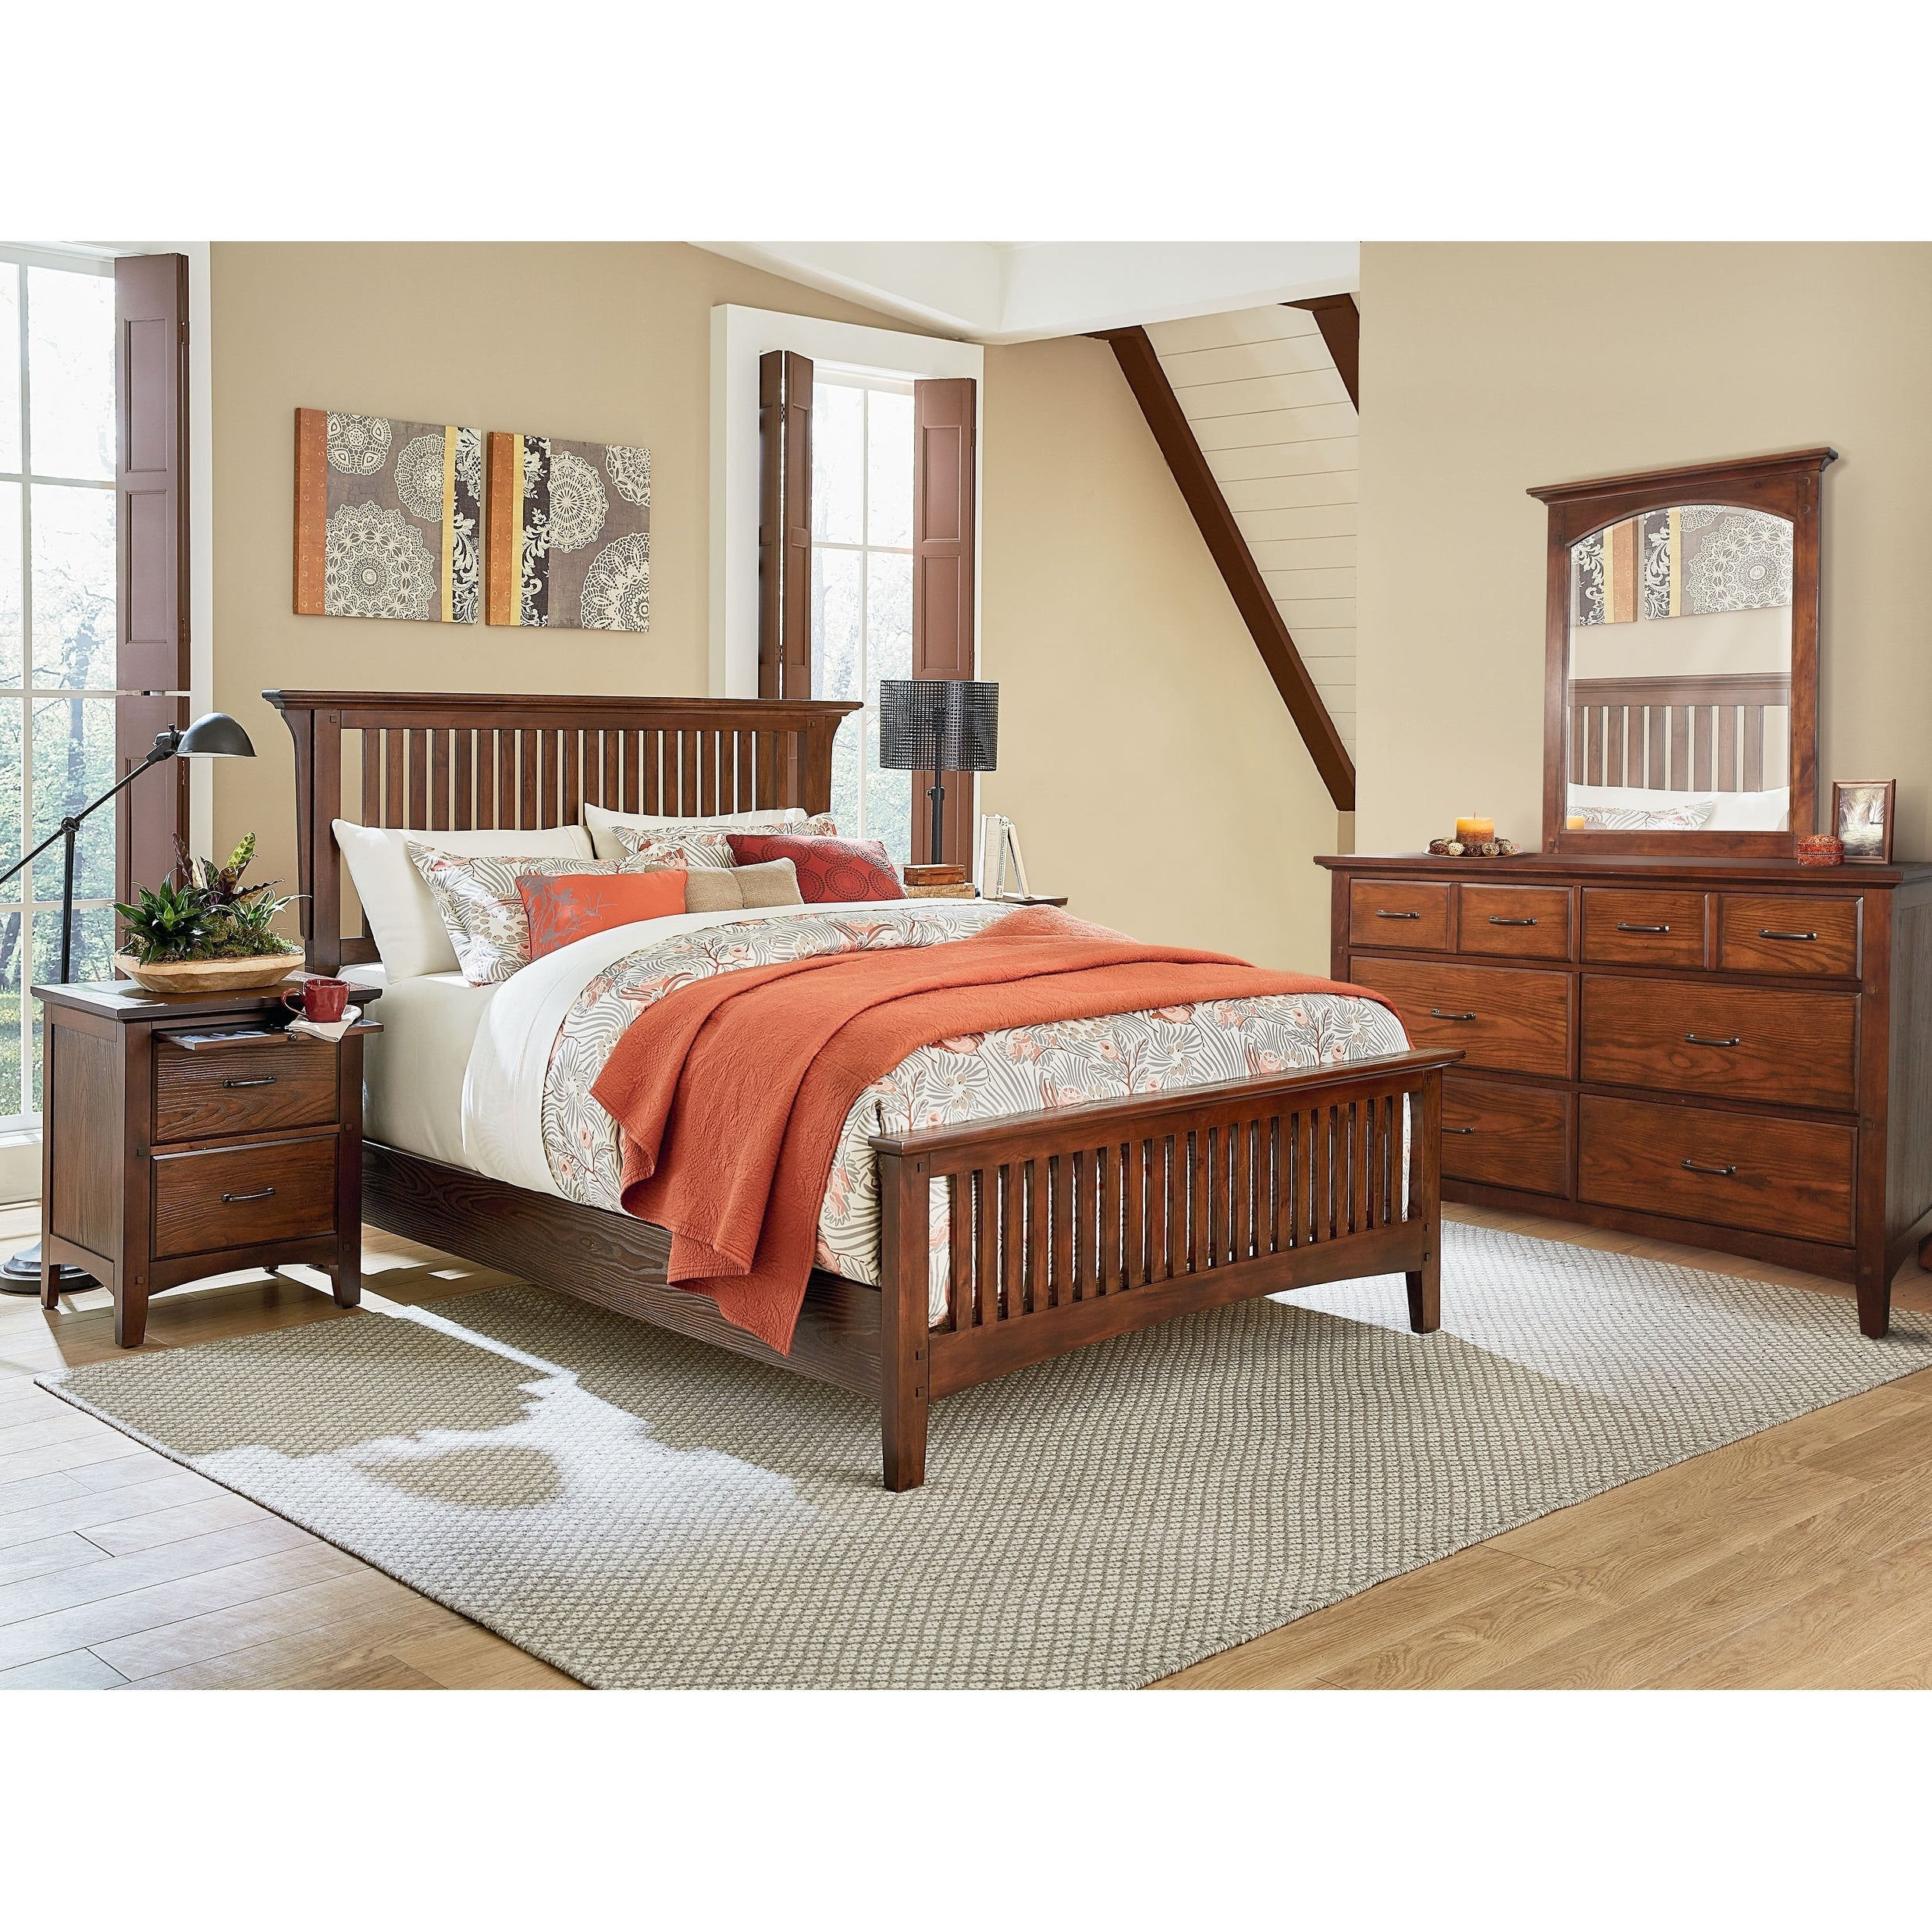 Osp Home Furnishings Modern Mission King Bedroom Set With 2 Nightstands And 1 Dresser With Mirror throughout Modern Bedroom Set King